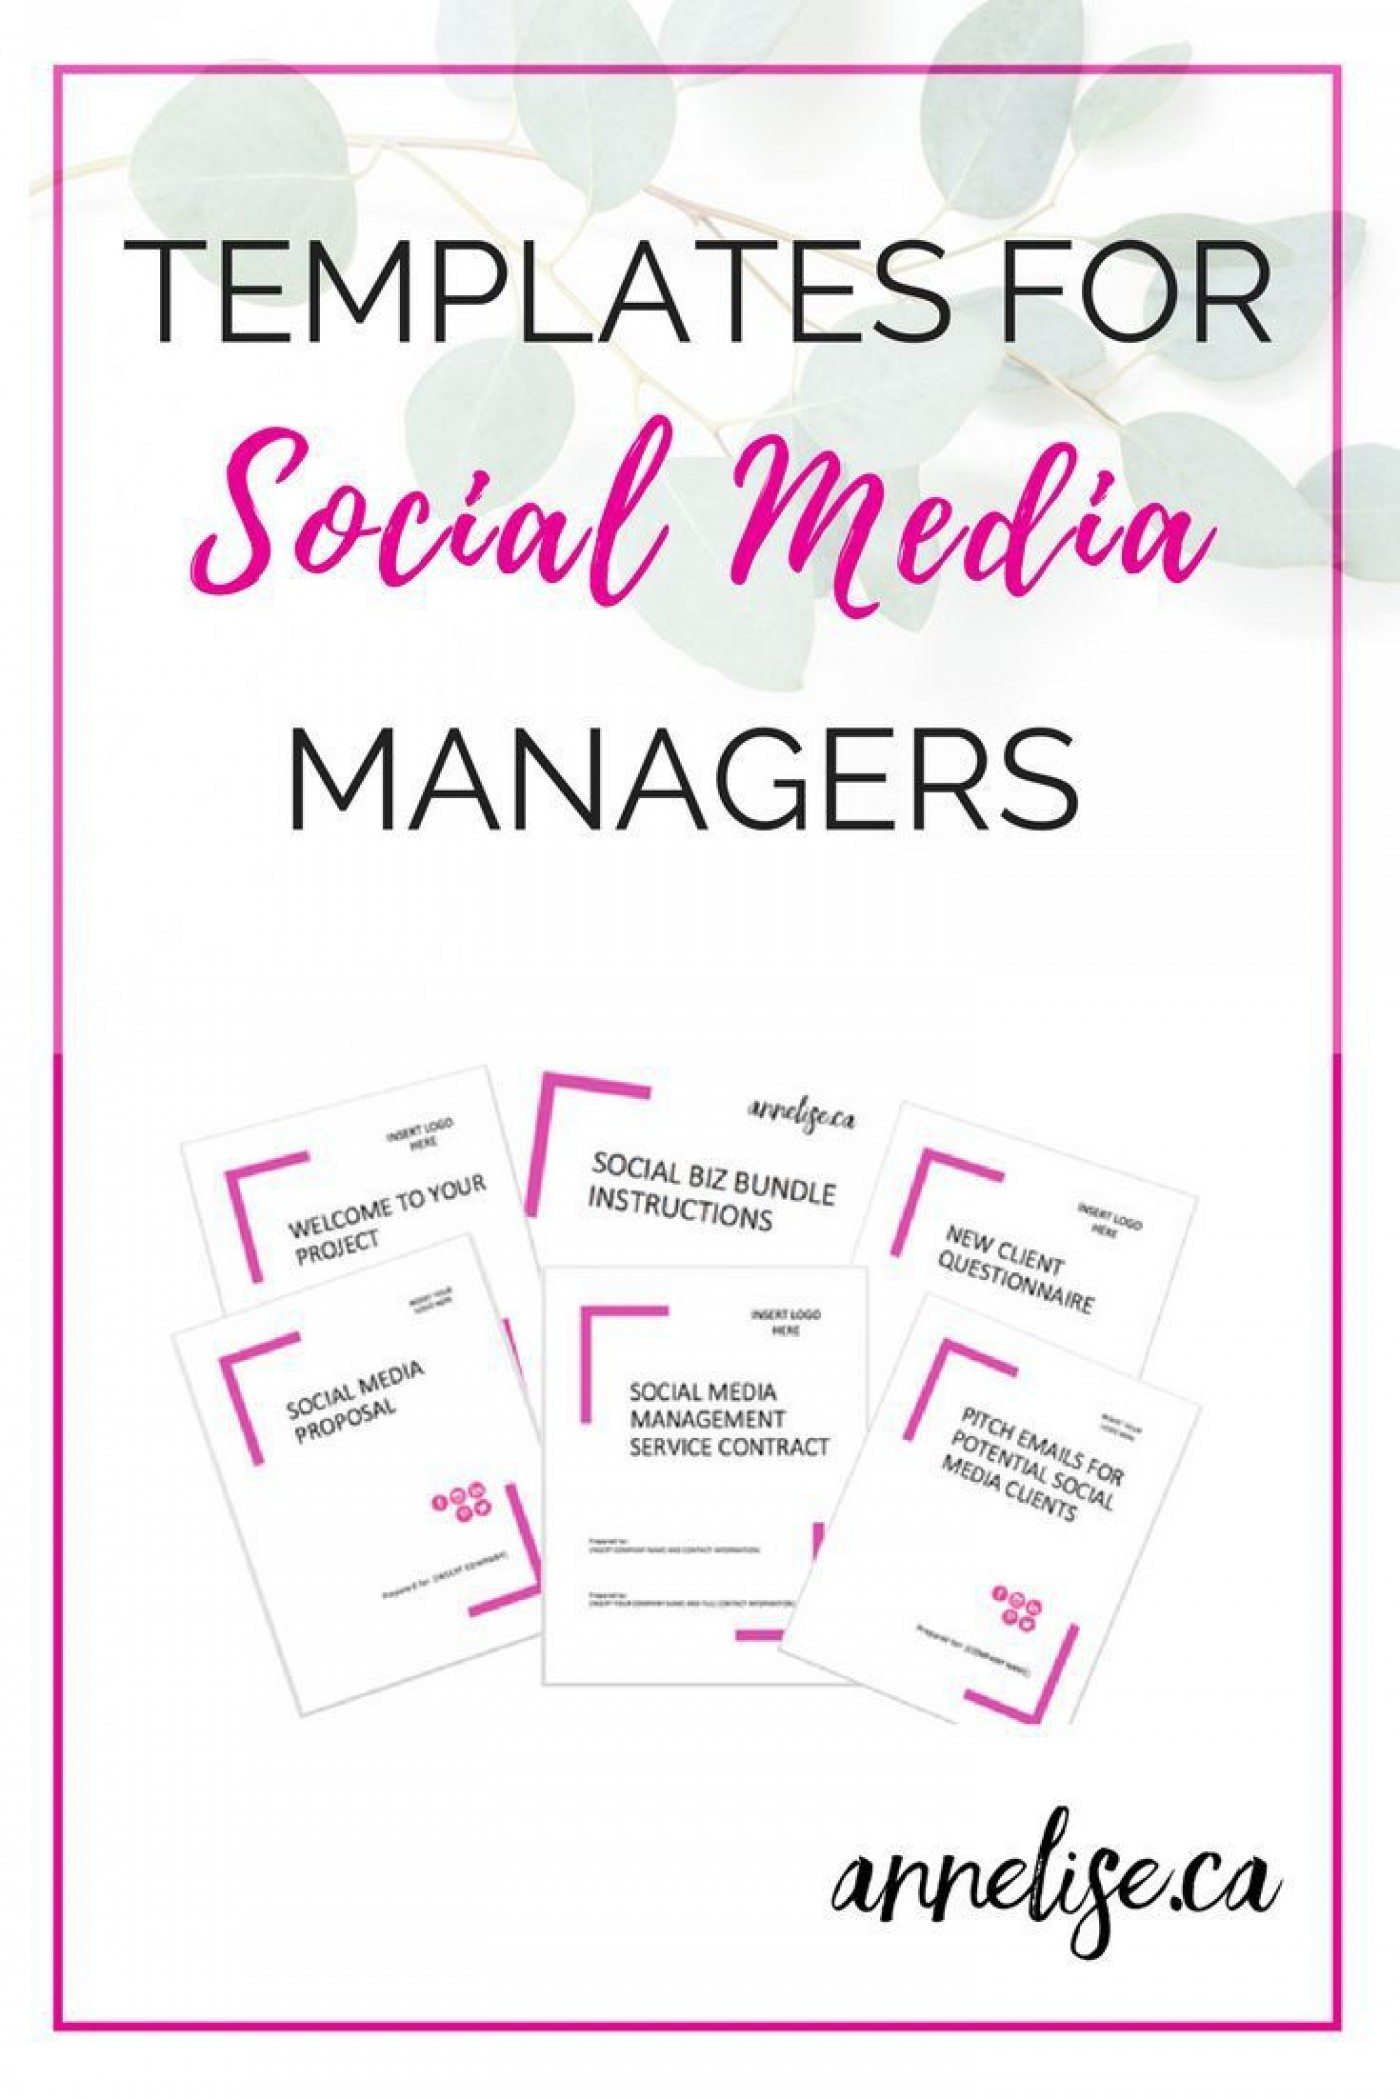 003 Awesome Social Media Proposal Template High Resolution  Plan Sample Pdf 20181400